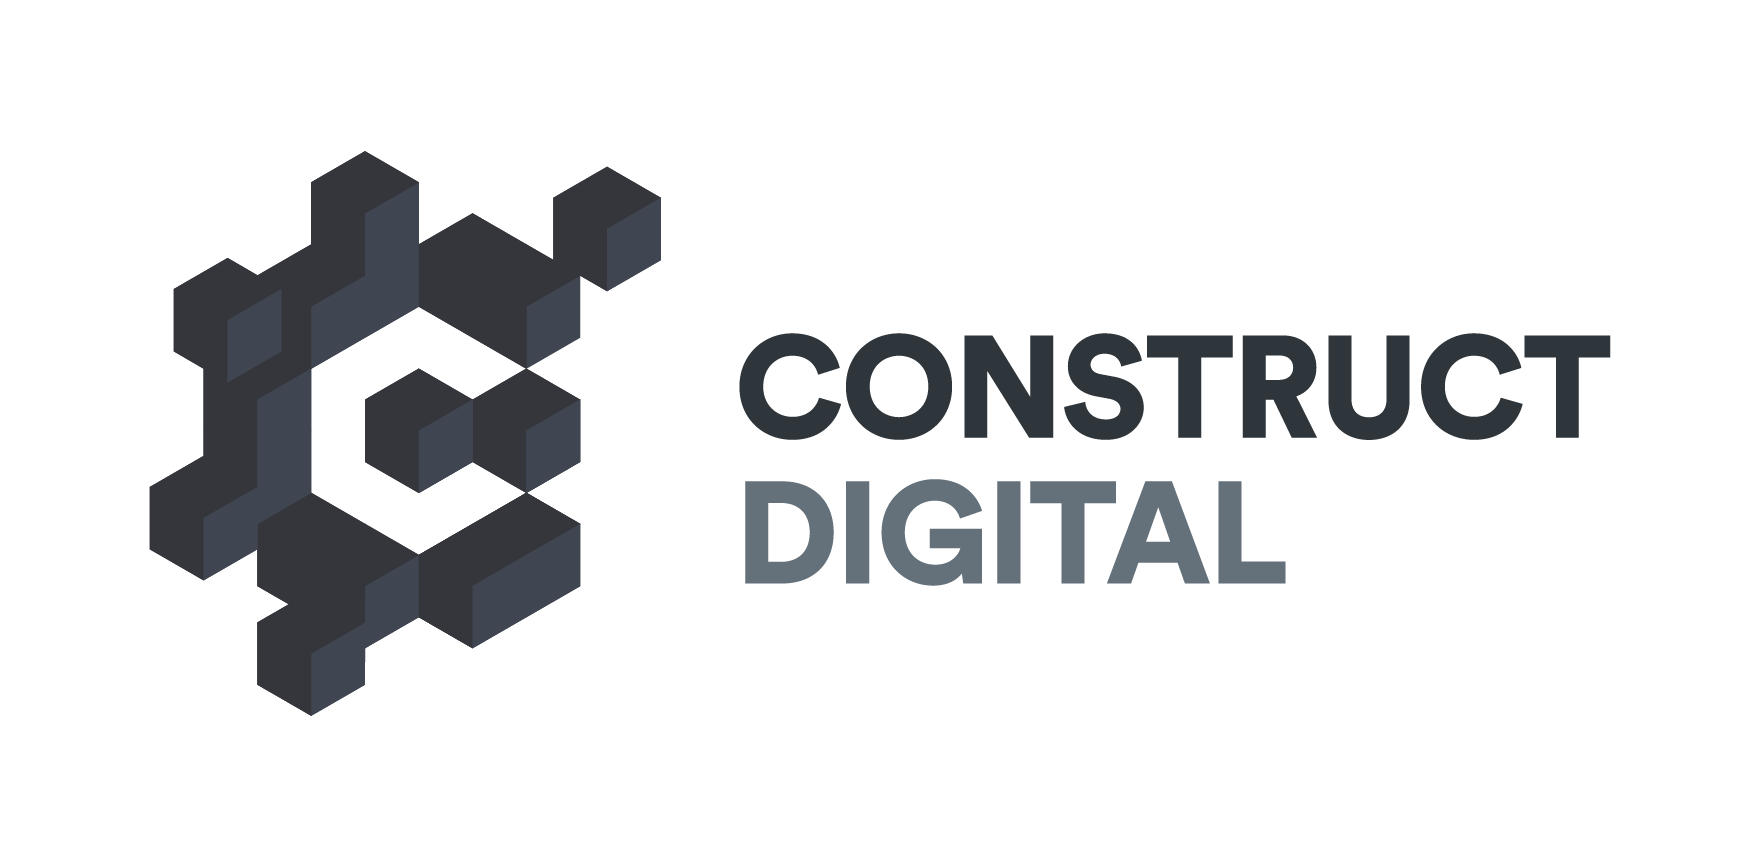 Construct Digital Logo (RGB)_Colored_Full_Transparent